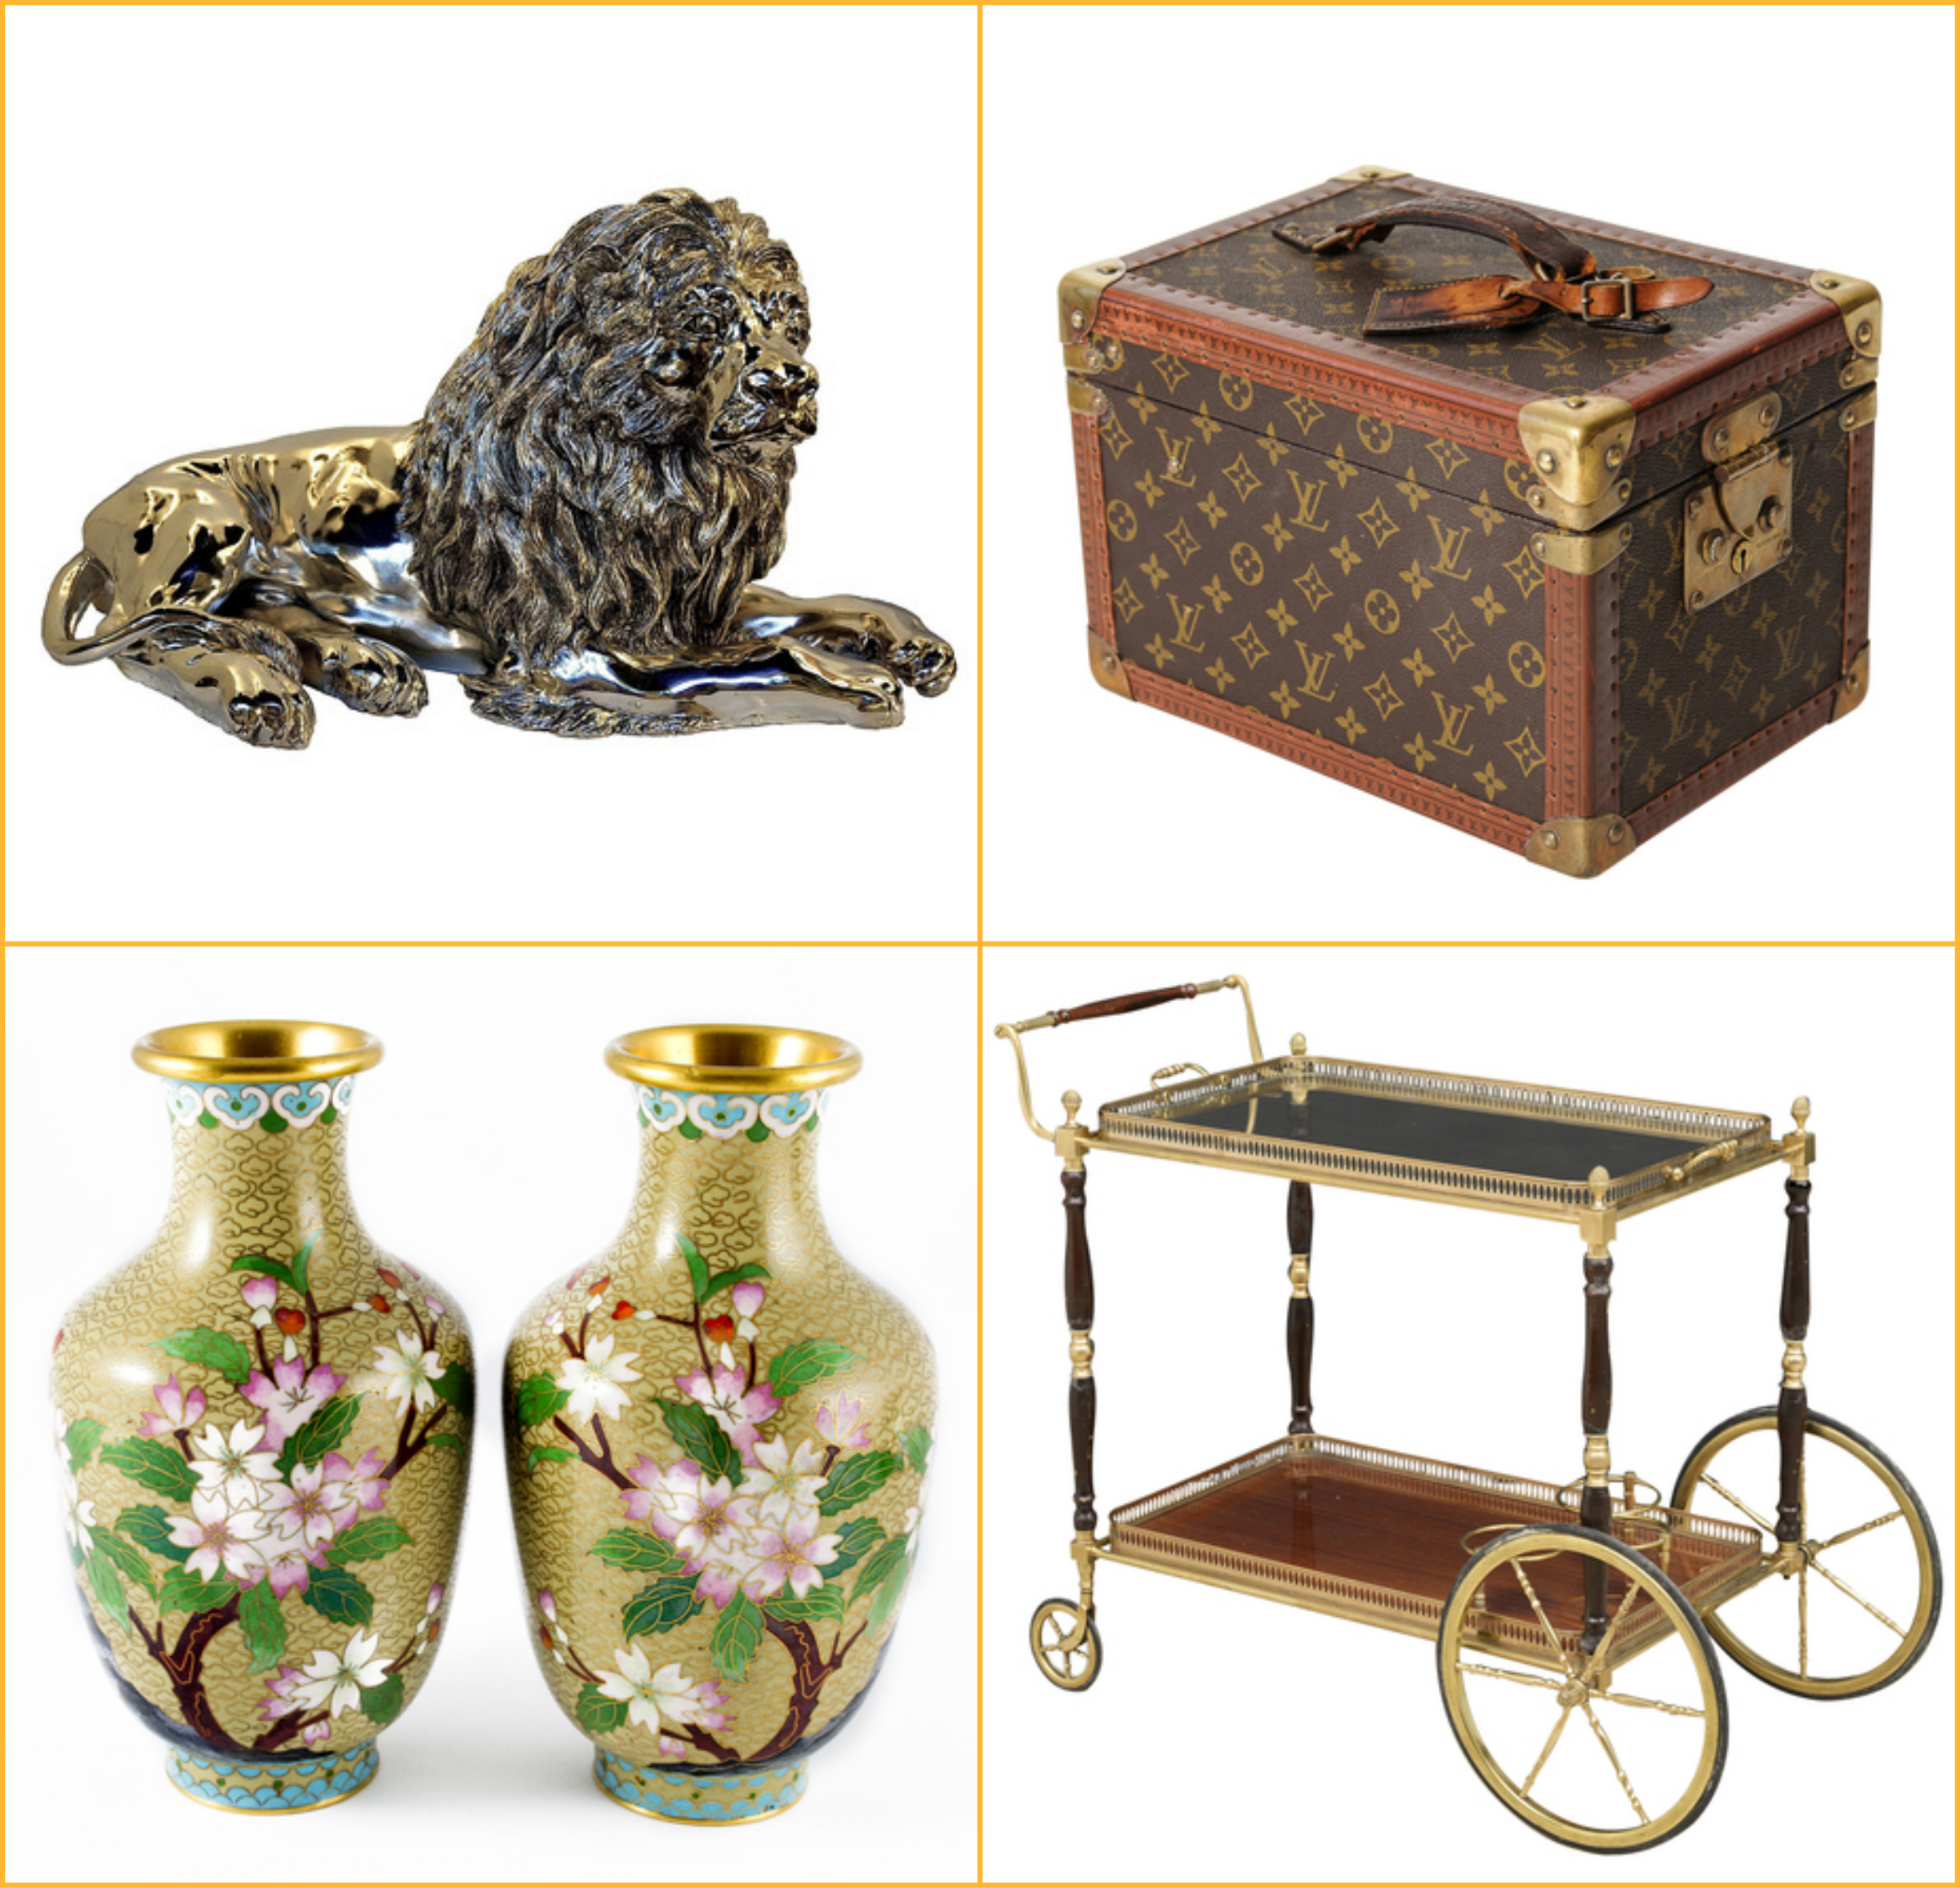 The High Boy Antique Online Better Decorating Blog European French Italian Site